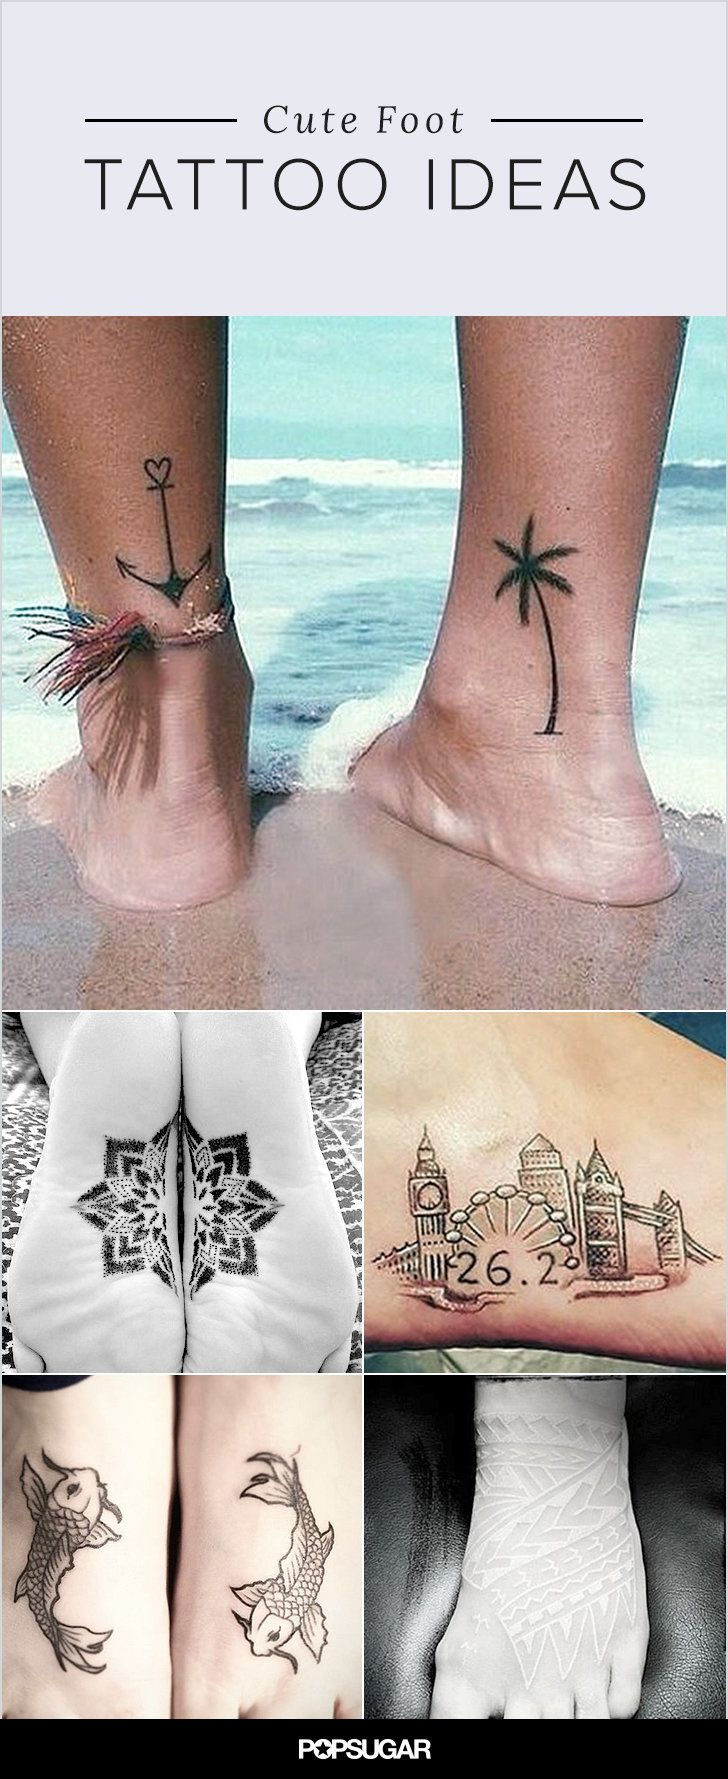 Tattoo Locations On Body: 13 Foot Tattoos That Are Too Cute To Hide With Socks